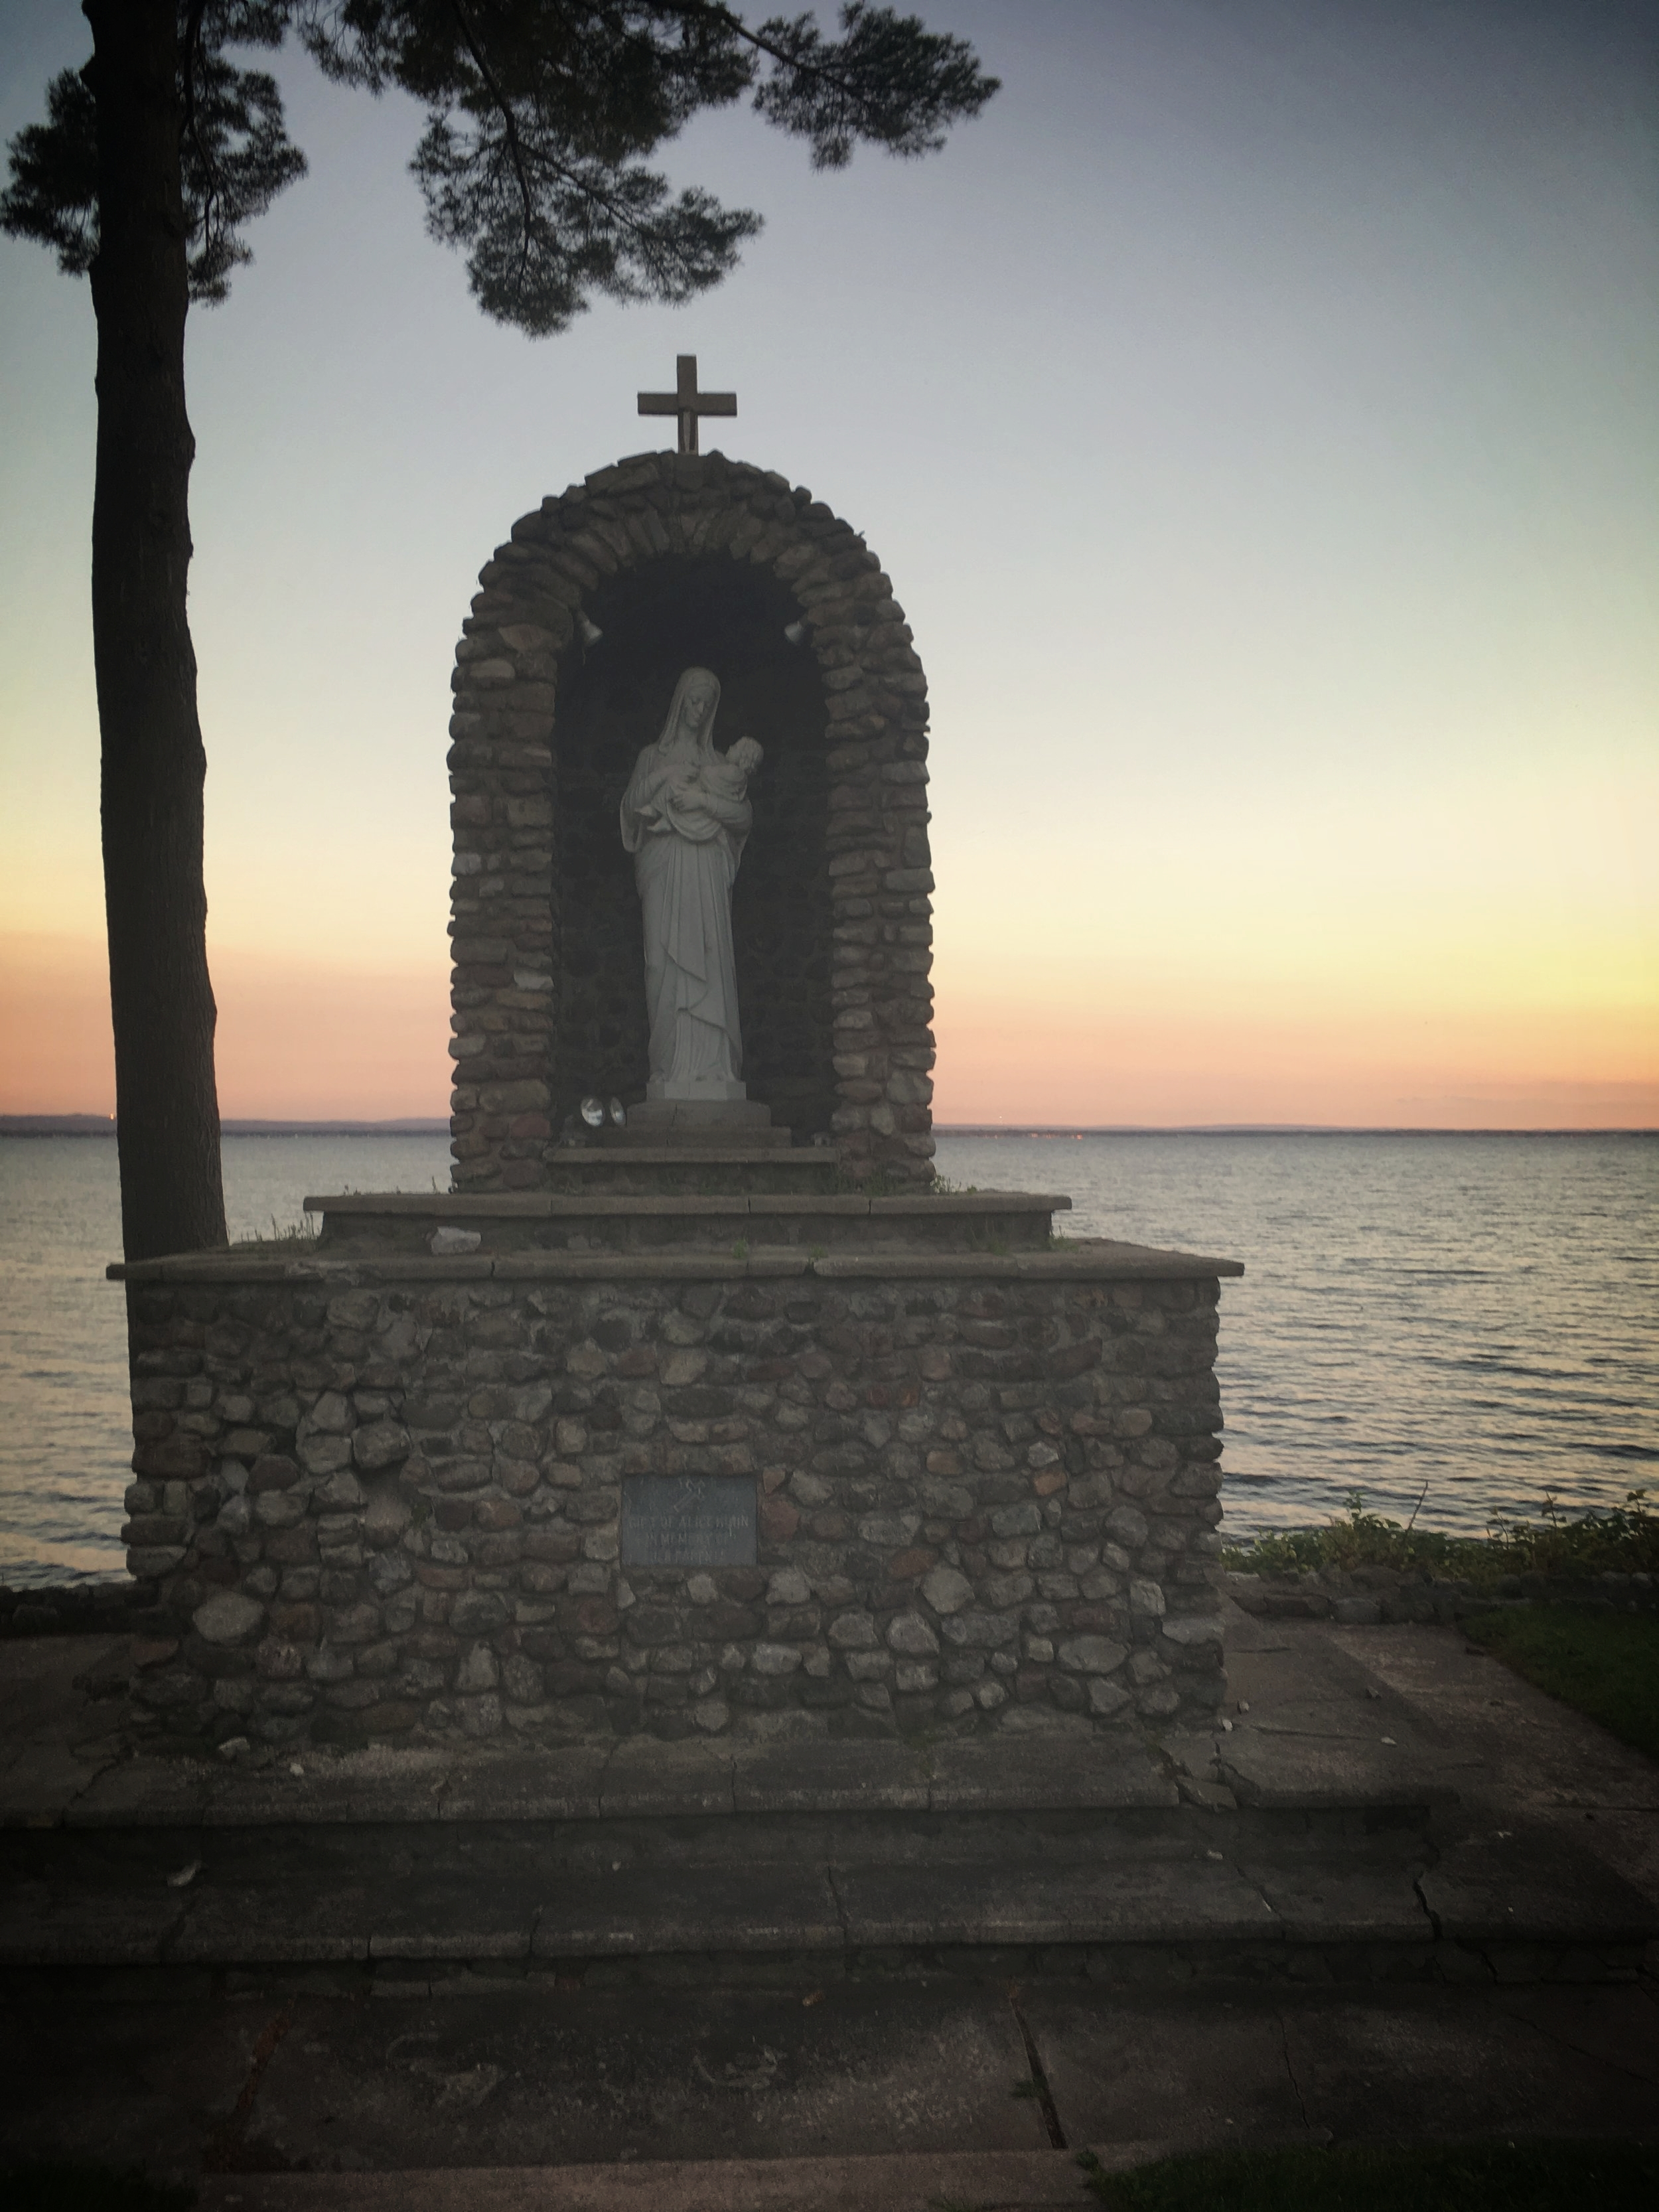 ST. MARY'S ORATORY - St. Mary's Oratory is available for baptisms, weddings and funerals.To make a reservation or for more informationplease contact the Divine Mercy Parish office at (315)676-2898.